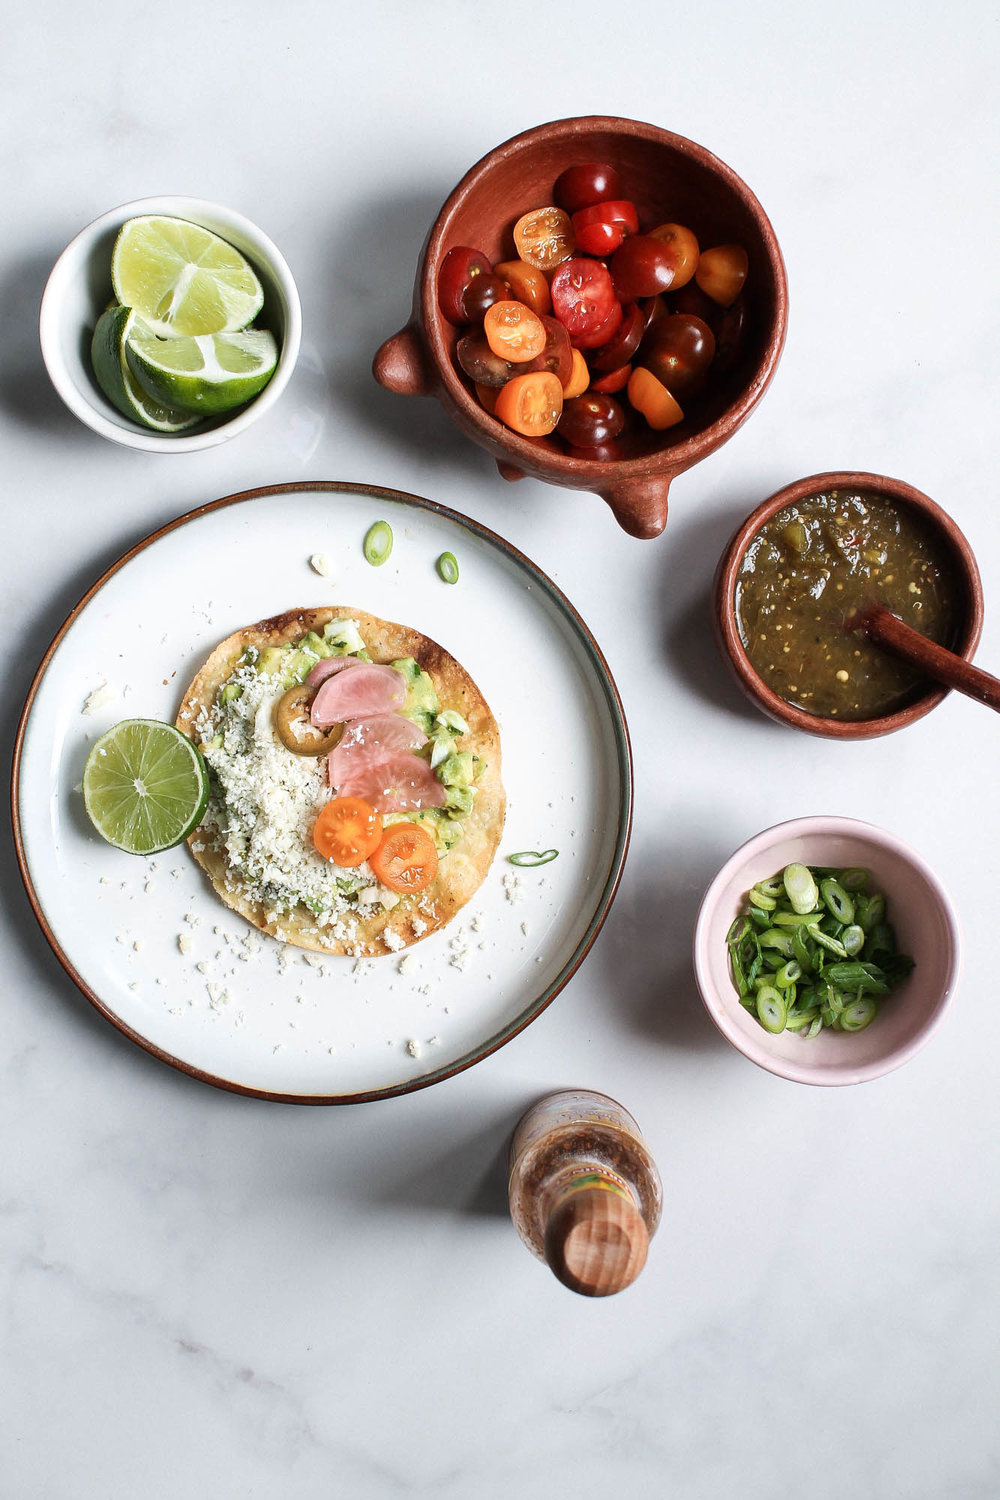 Avocado Egg Salad Tostada + Escabeche (pickled vegetables)  || A healthy and delicious meal with fresh ingredients inspired by Mexico. A perfect recipe for summer that is easy to make and can be eaten at breakfast, lunch or dinner! || creamandhoney.ca